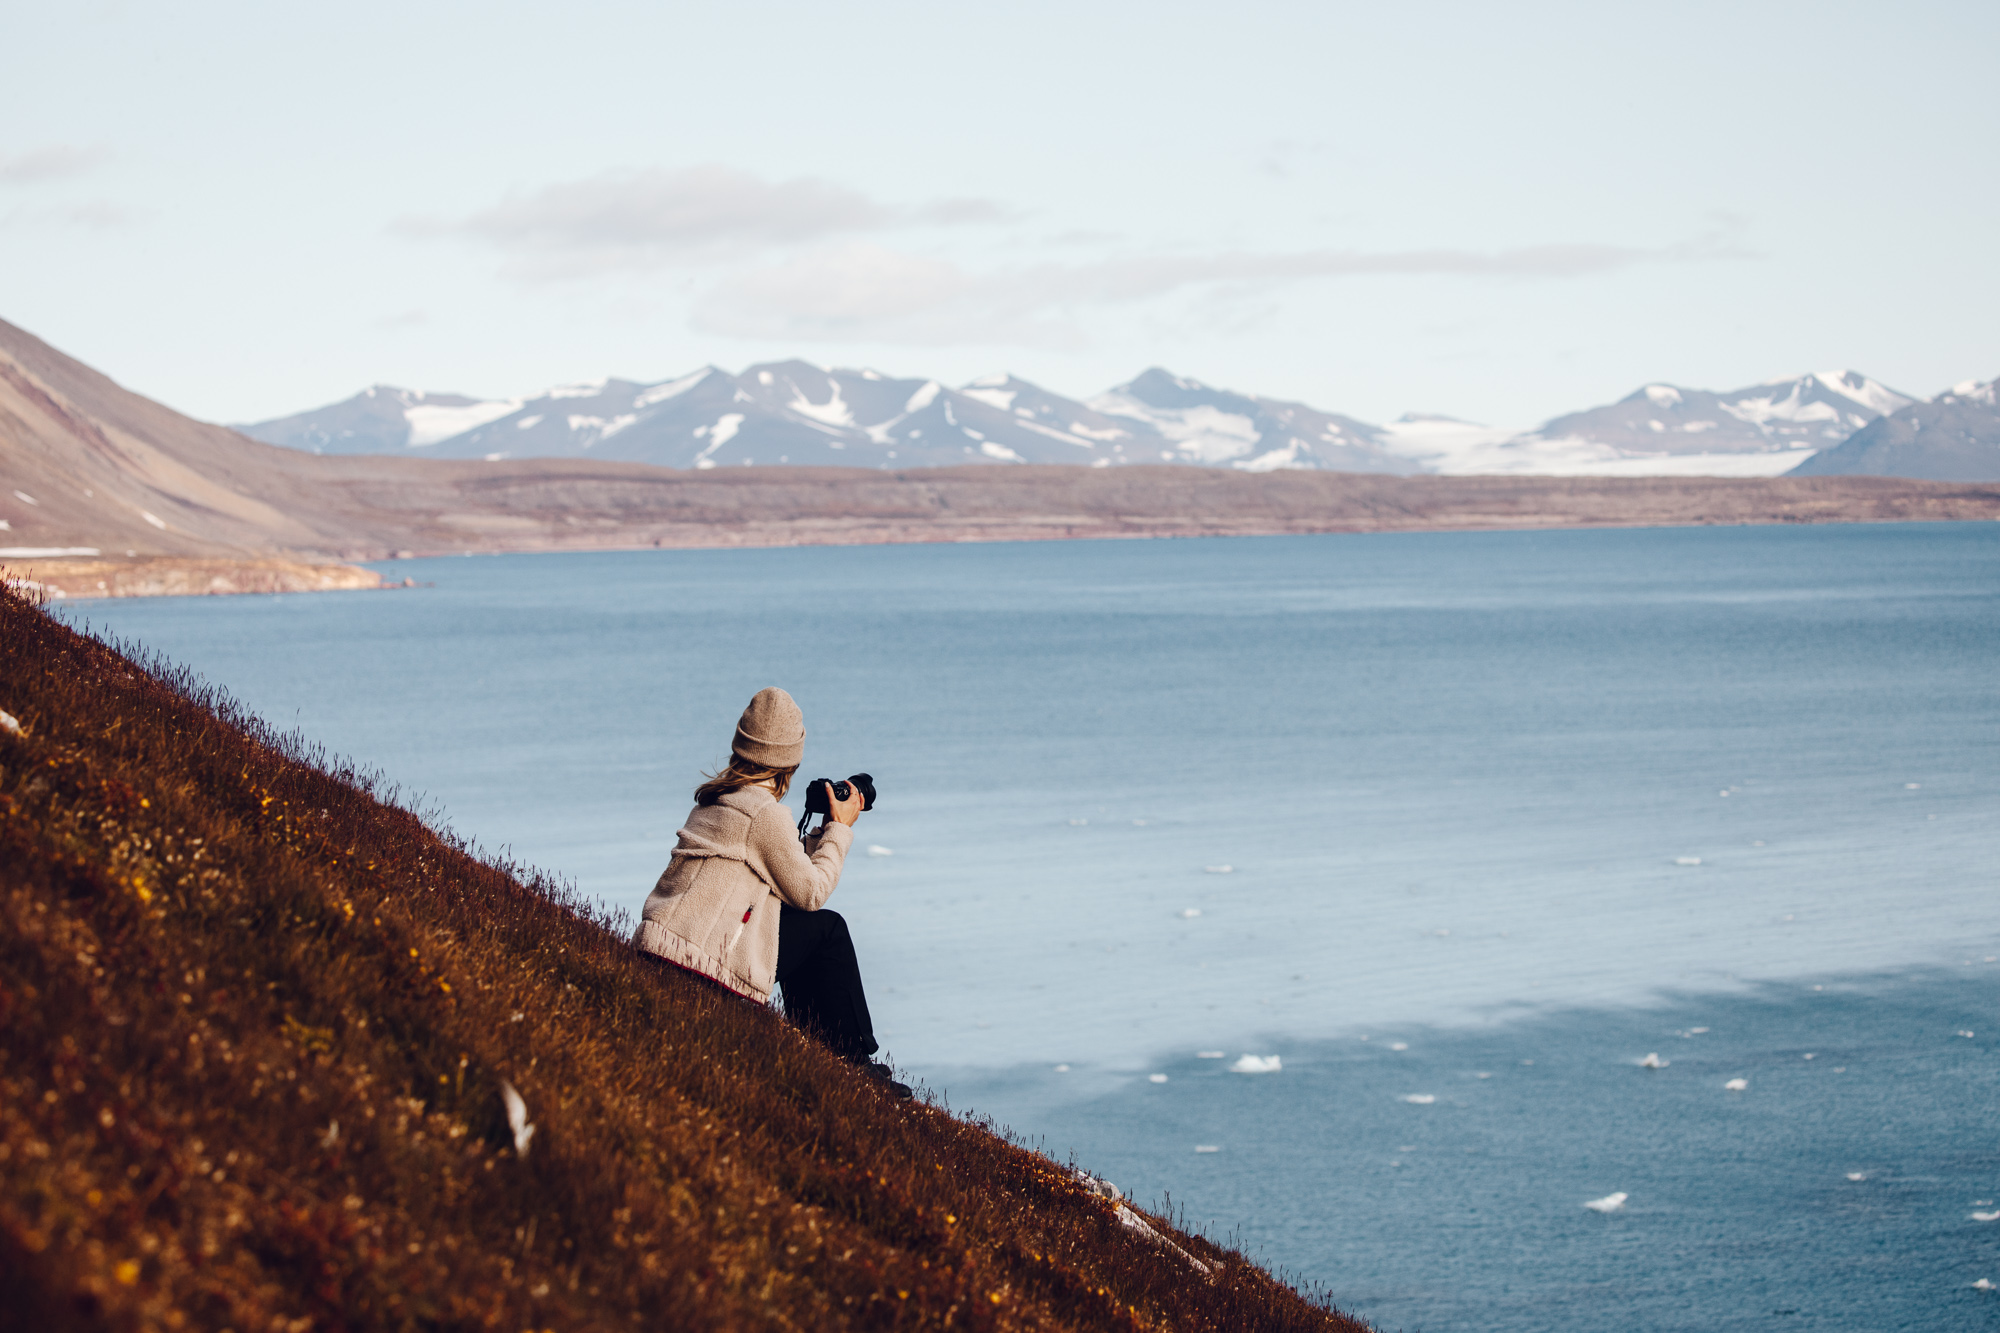 Hike over the arctic sea in Svalbard, Spitsbergen, Norway